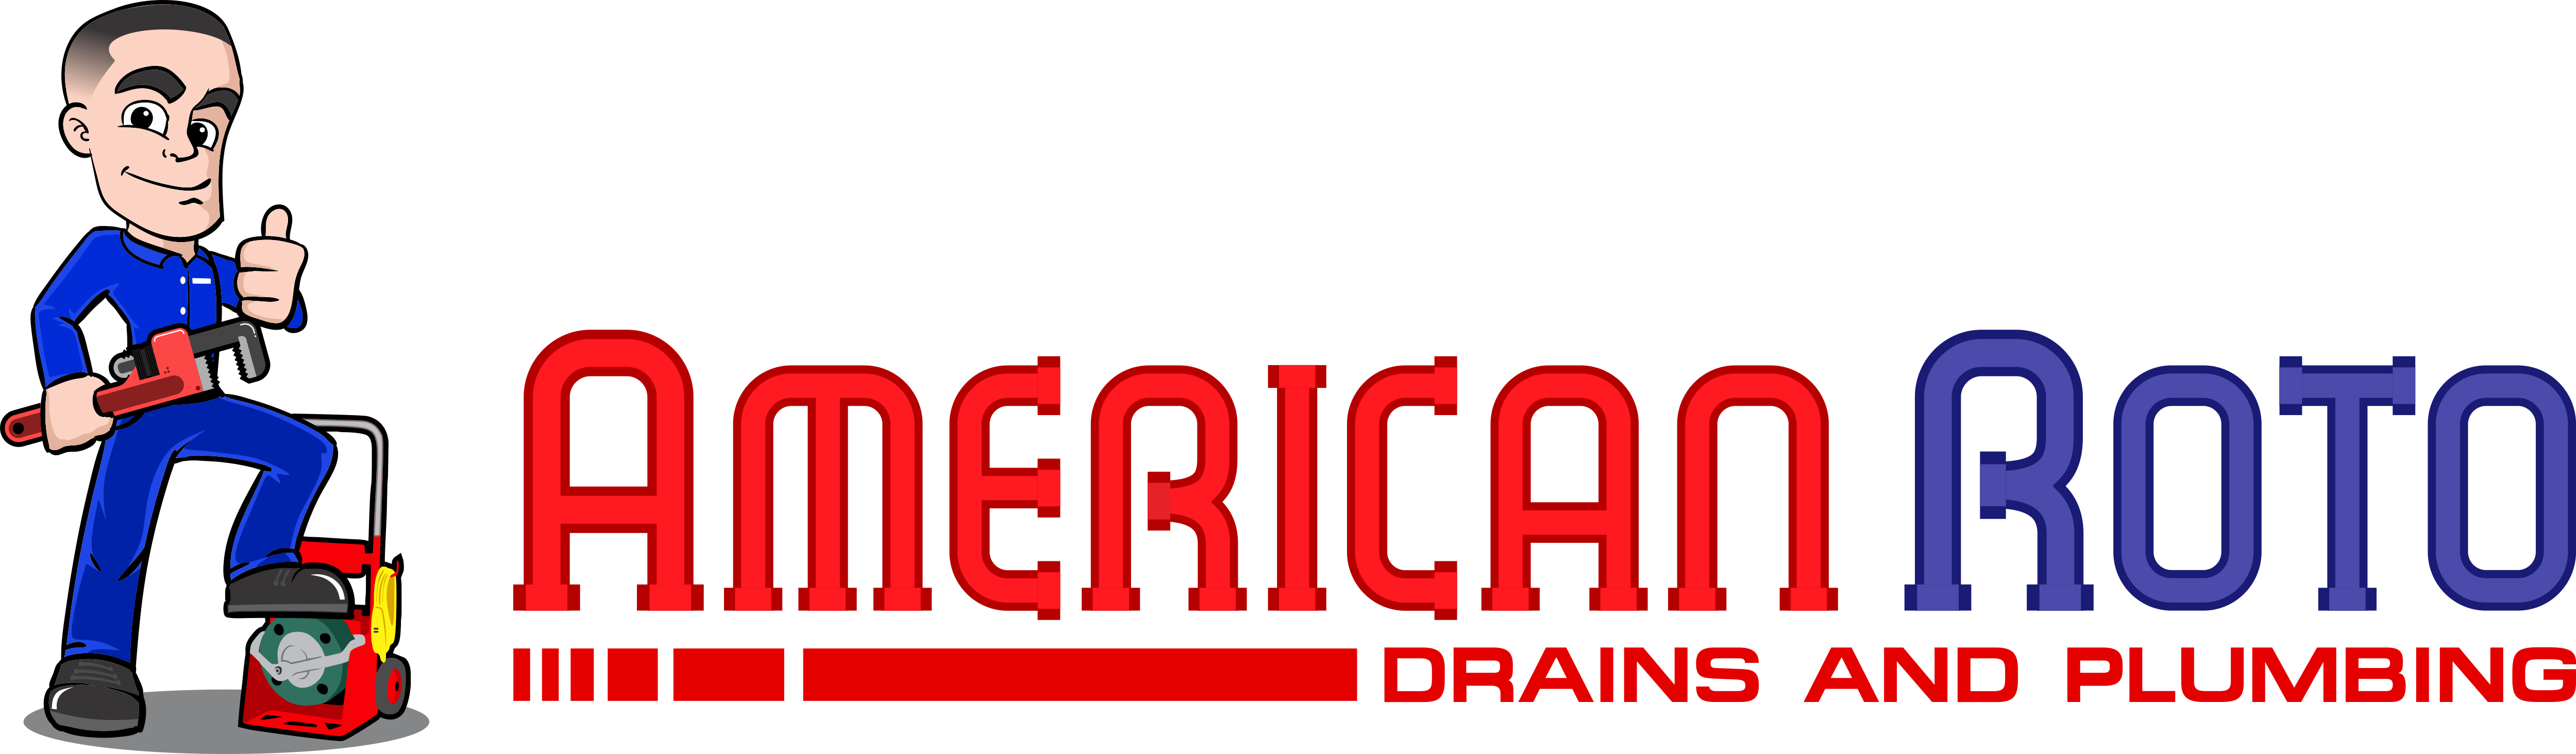 American Roto Drains & Plumbing is a Plumber Specialized in Drain Cleaning Maintenance and Repair in San Diego, CA